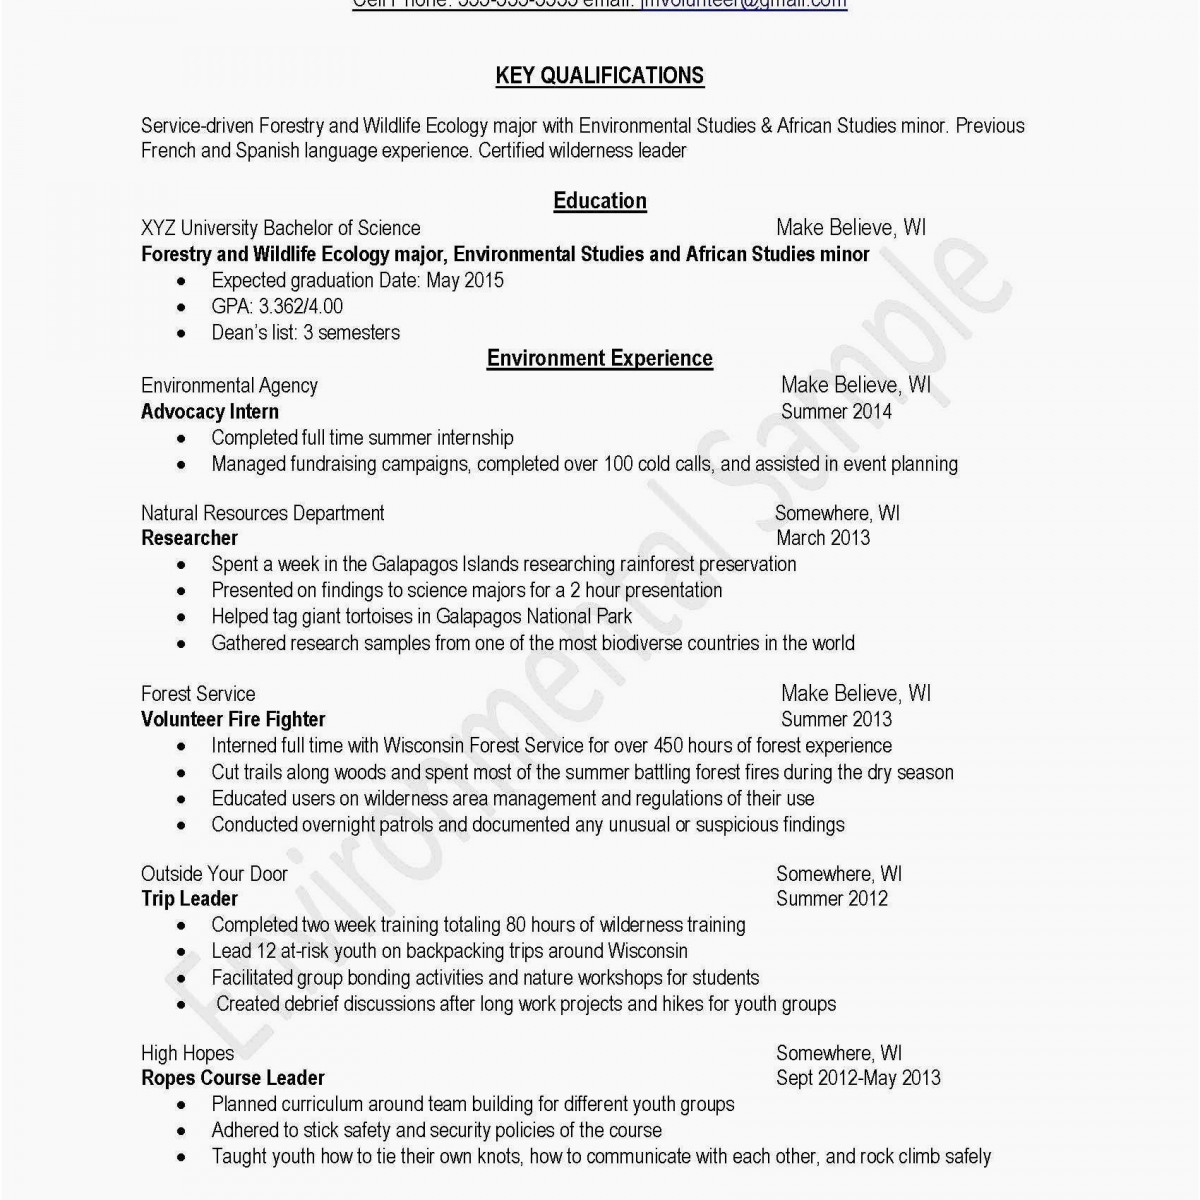 Myperfectresume Cost - My Perfect Resume Amazing My Perfect Resume Cost New Best